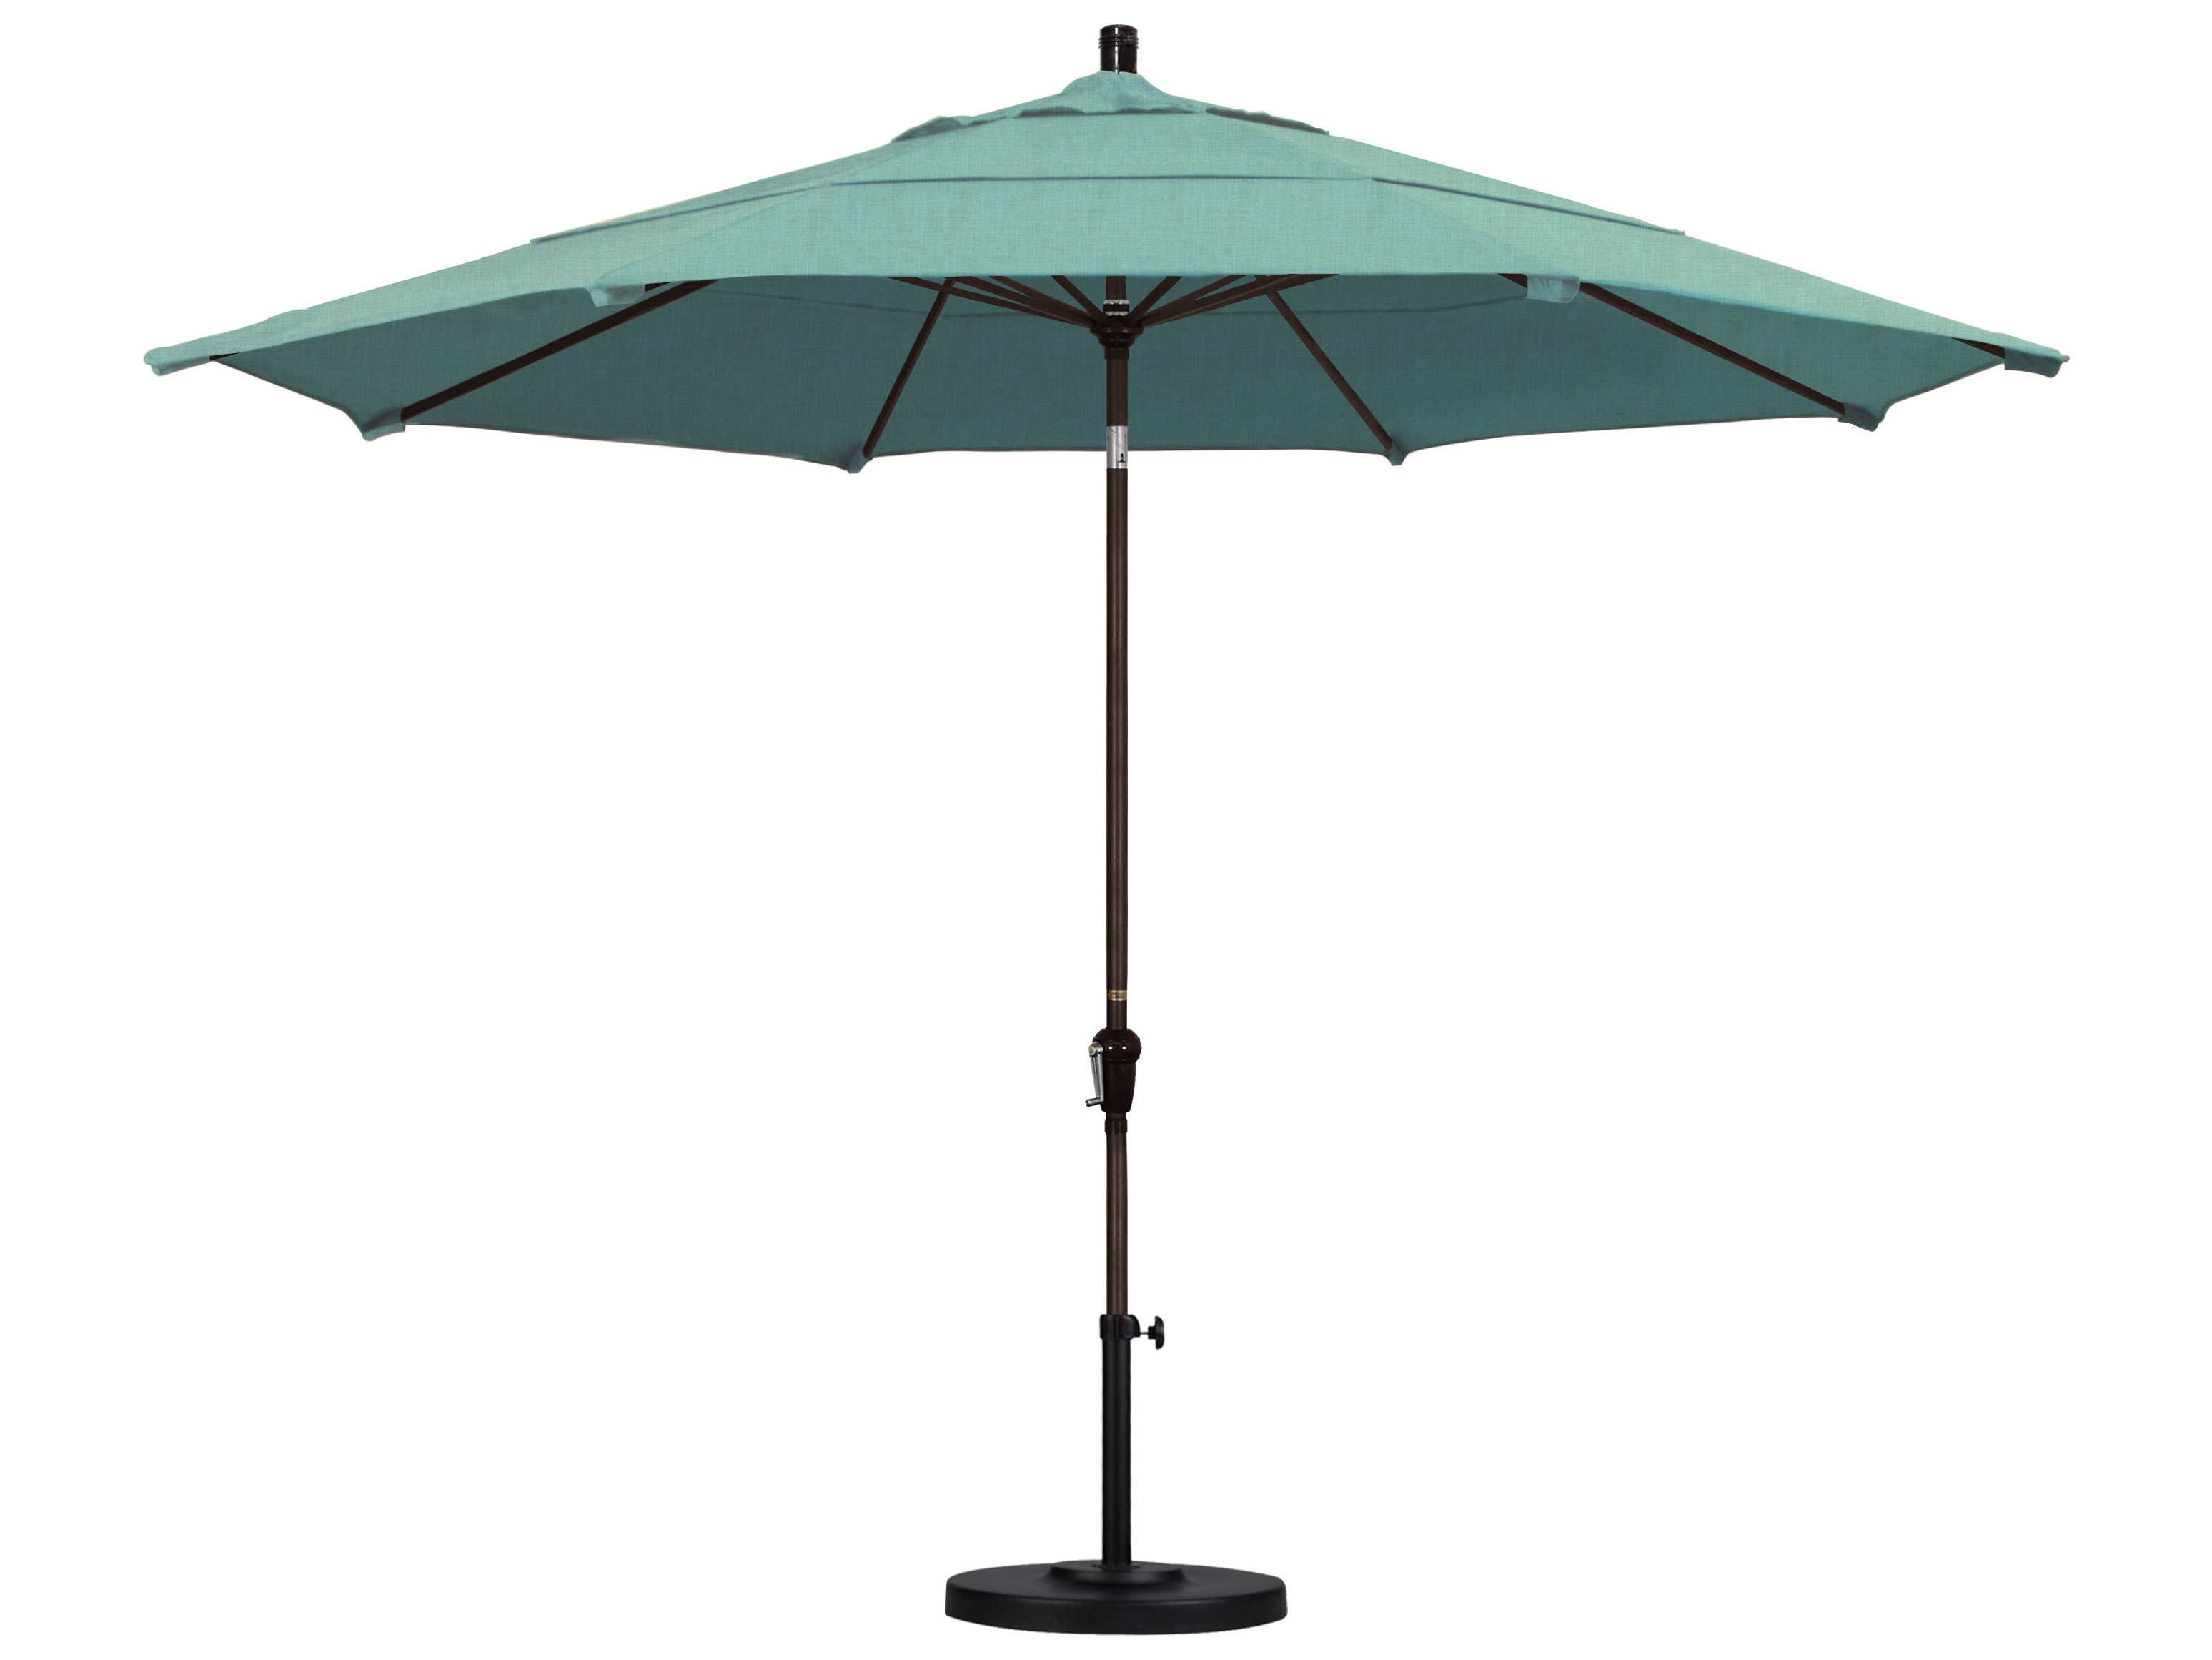 Favorite California Umbrella Sunset Series 11 Foot Octagon Market Aluminum Umbrella With Crank Lift System Regarding Haverhill Umbrellas (View 8 of 20)